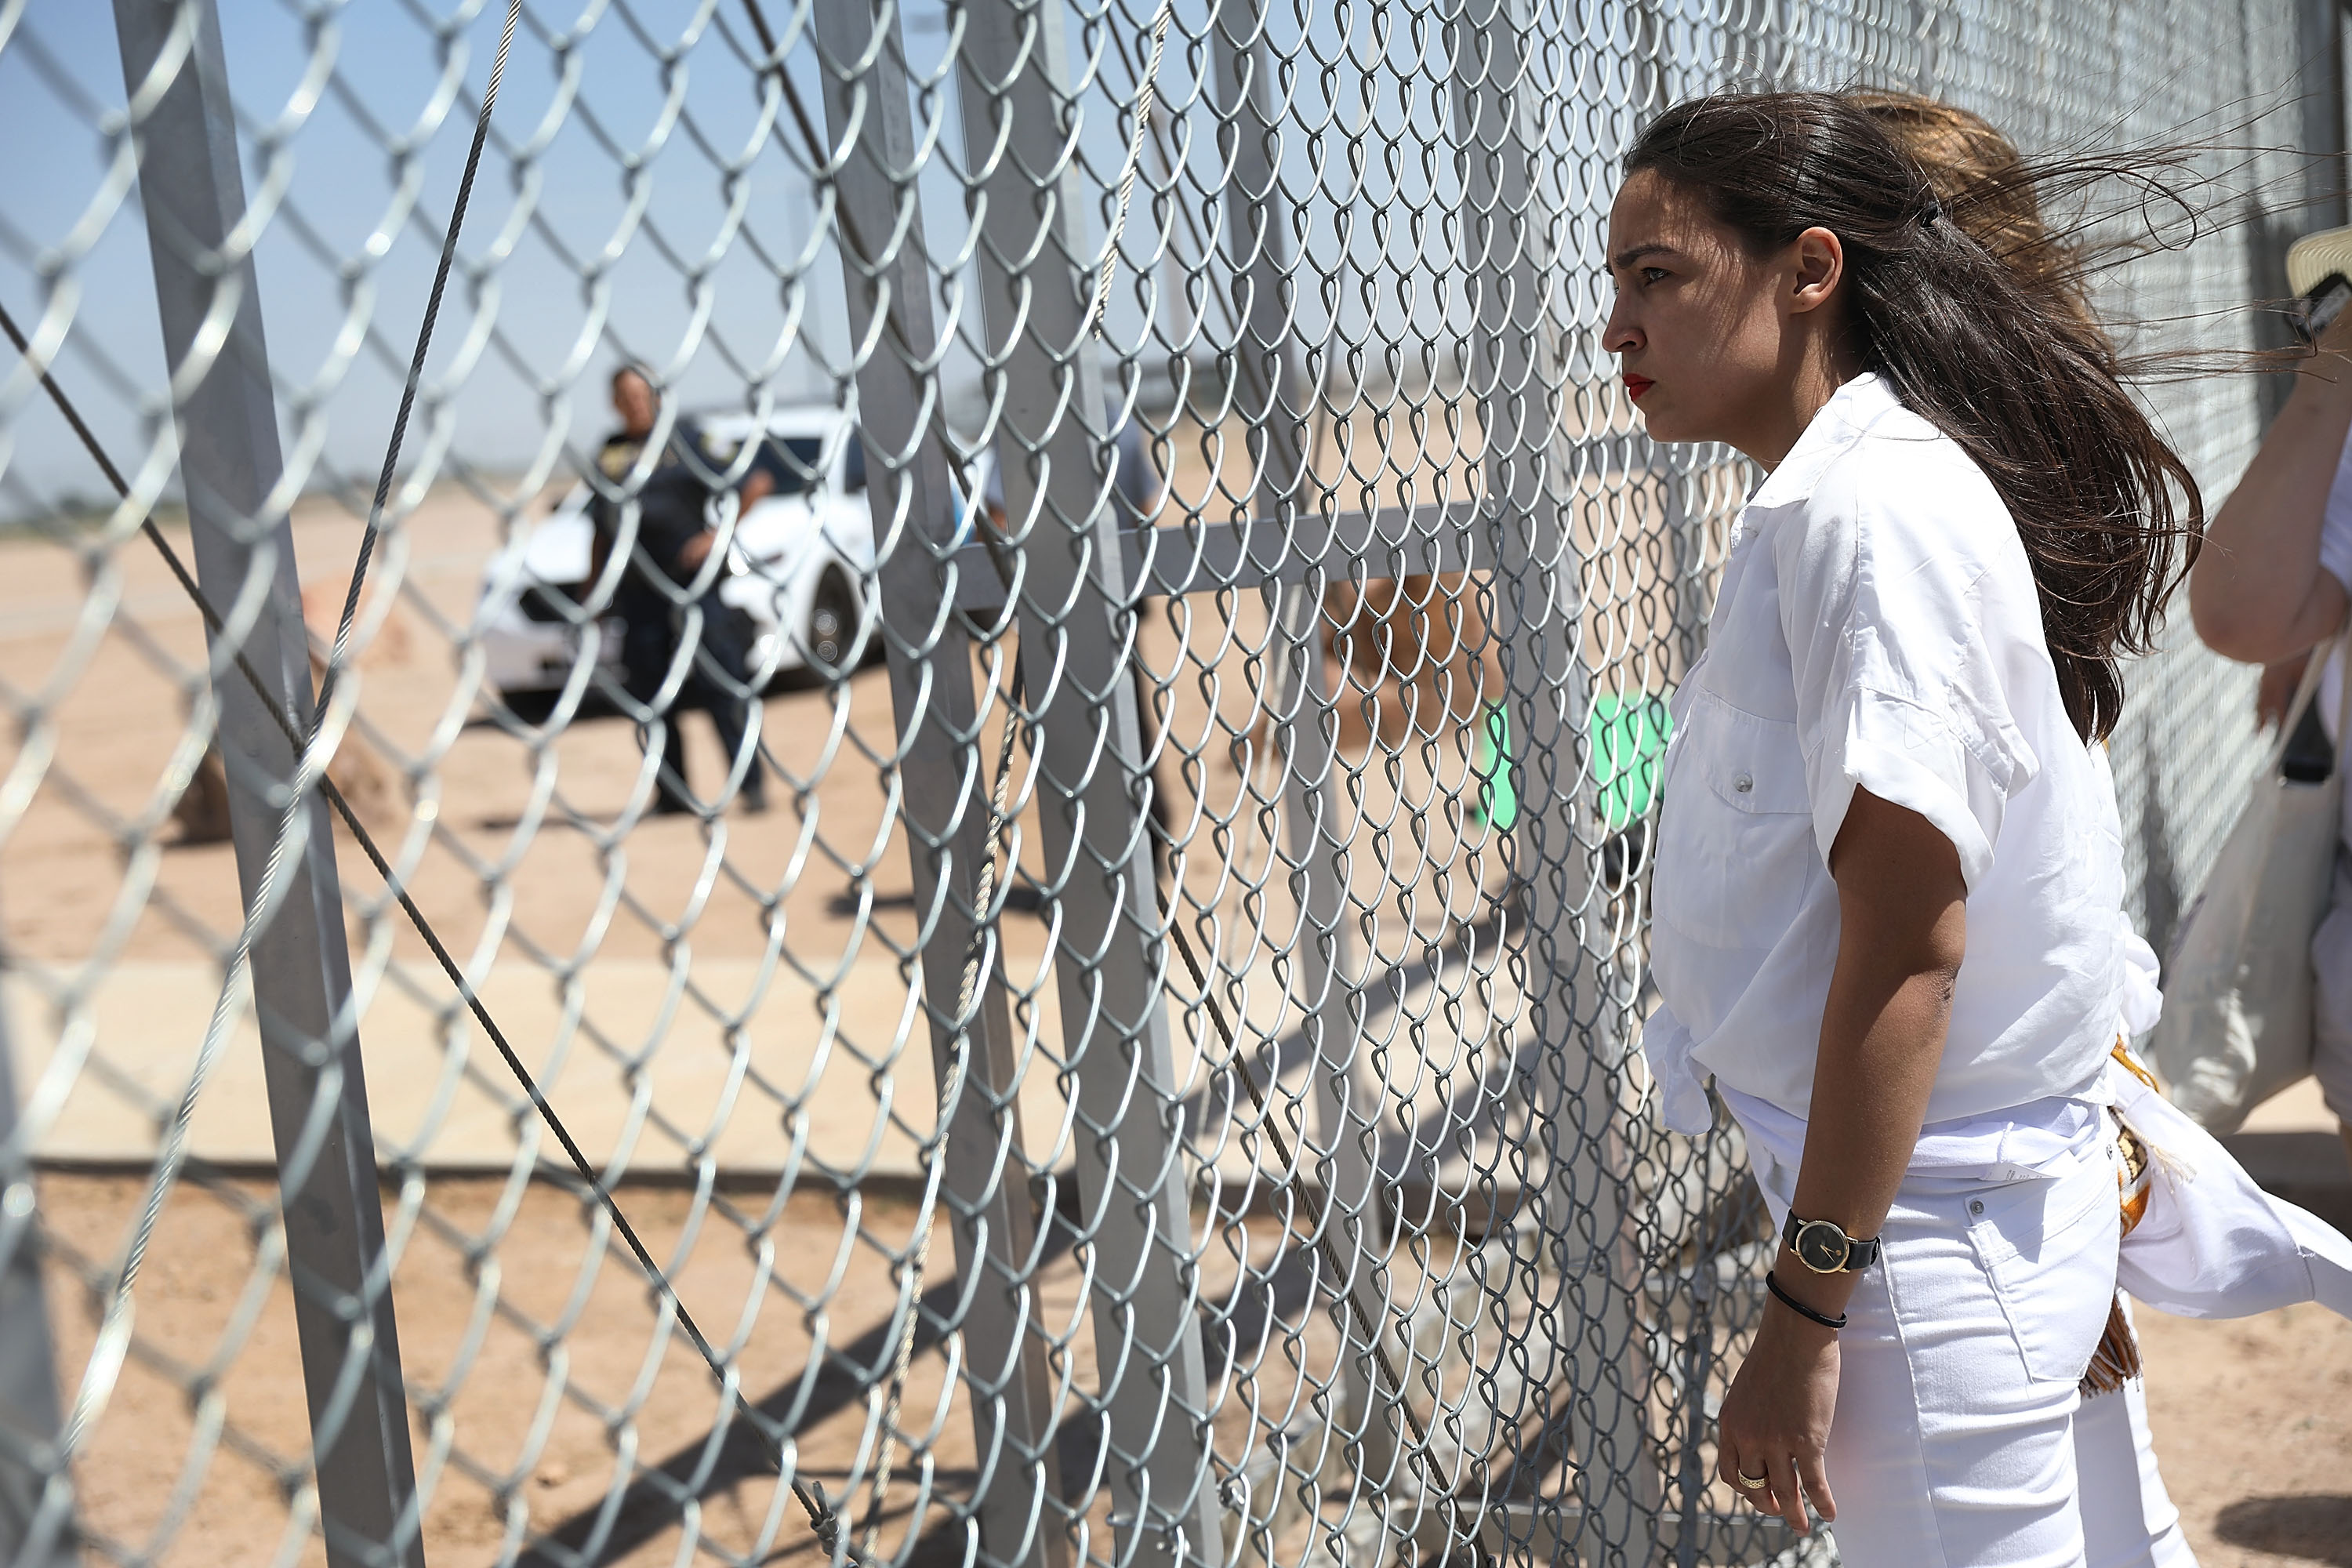 Alexandria Ocasio-Cortez protests the separation of children from their parents at the Tornillo-Guadalupe port of entry gate on June 24.